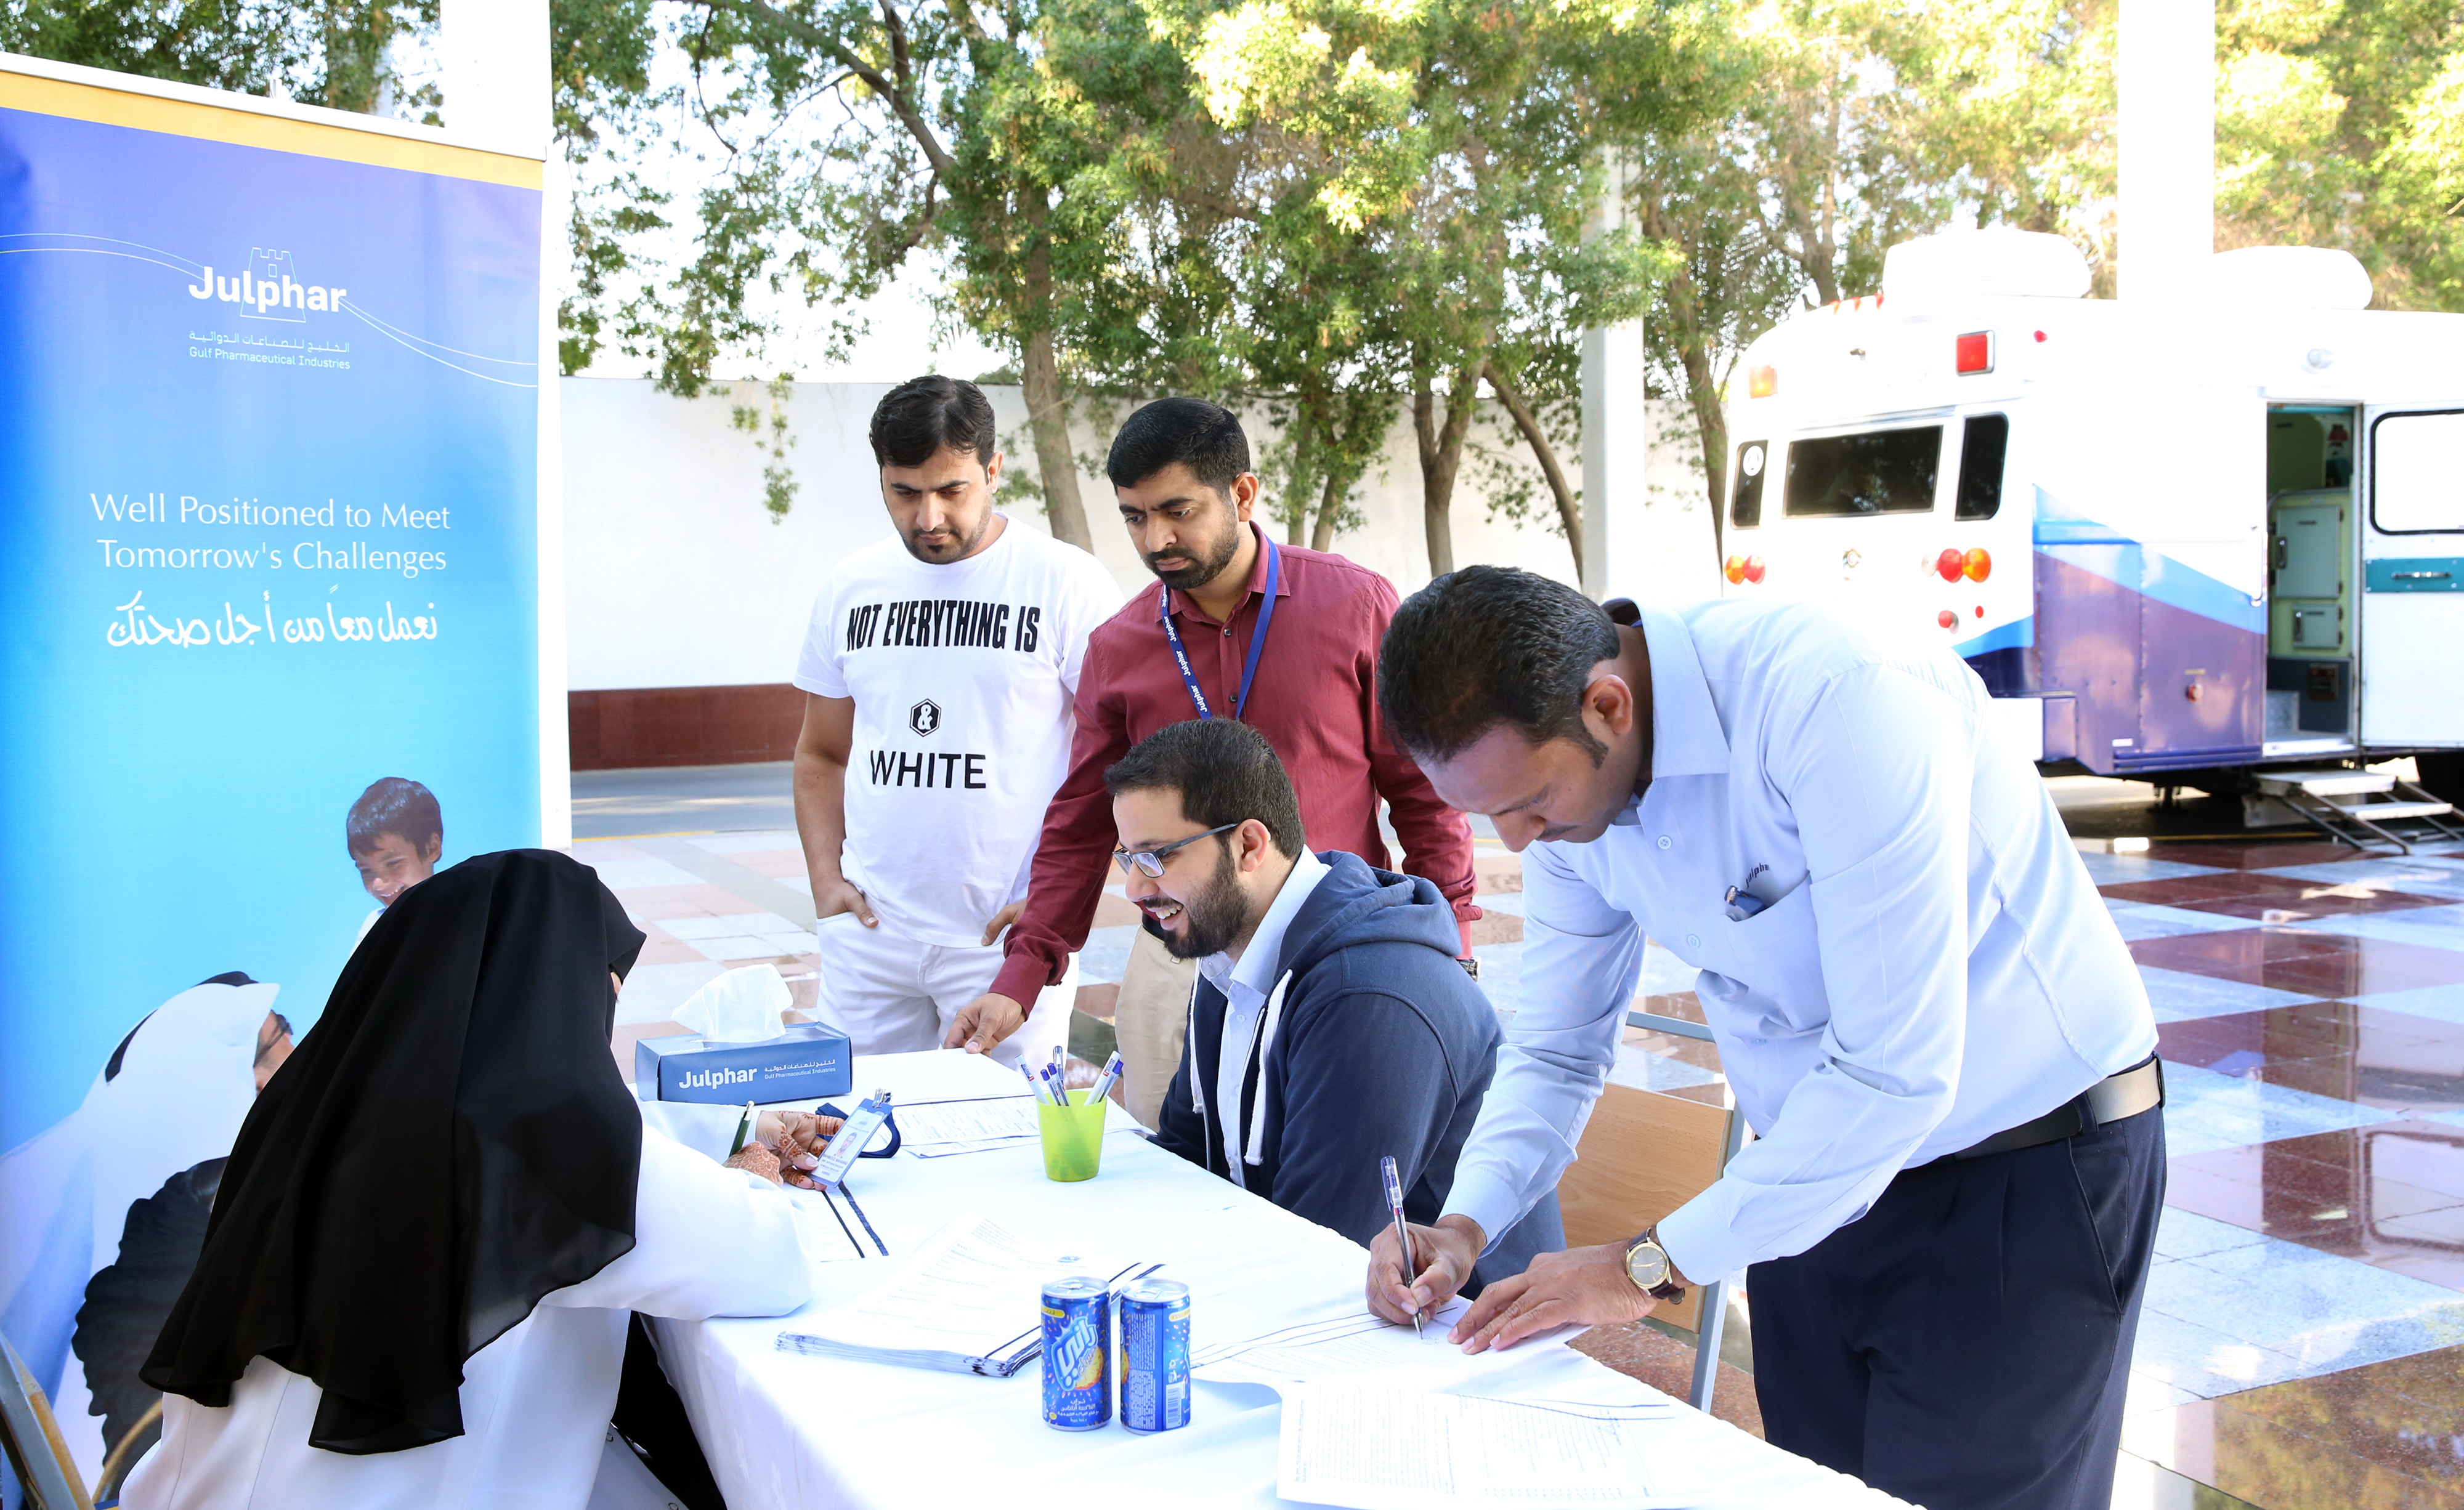 Julphar's employees show CSR commitment with blood donation